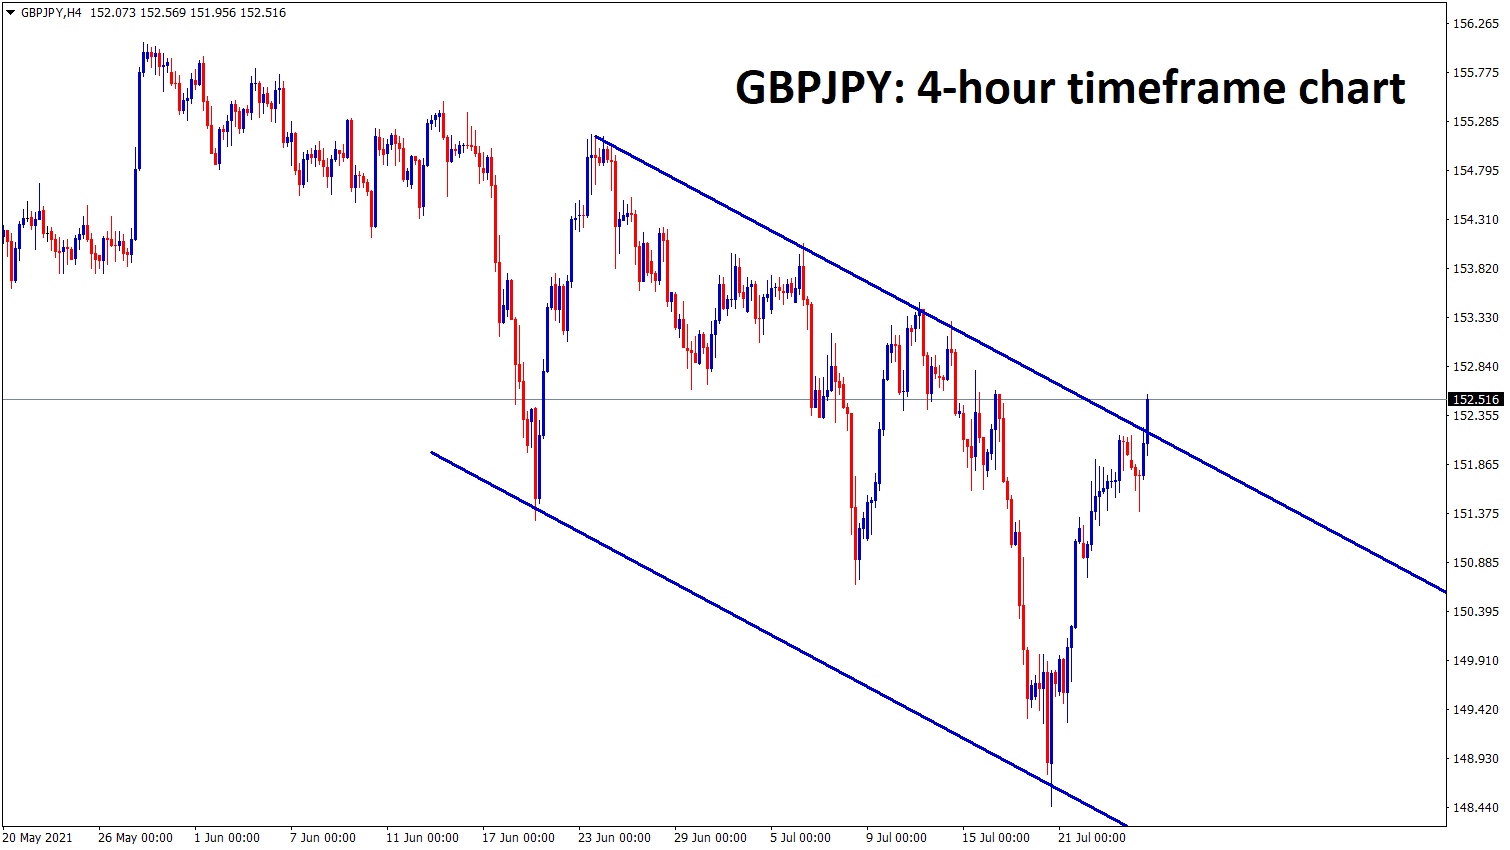 GBPJPY is at the lower high area of the descending channel wait for the confirmation of breakout or reversal